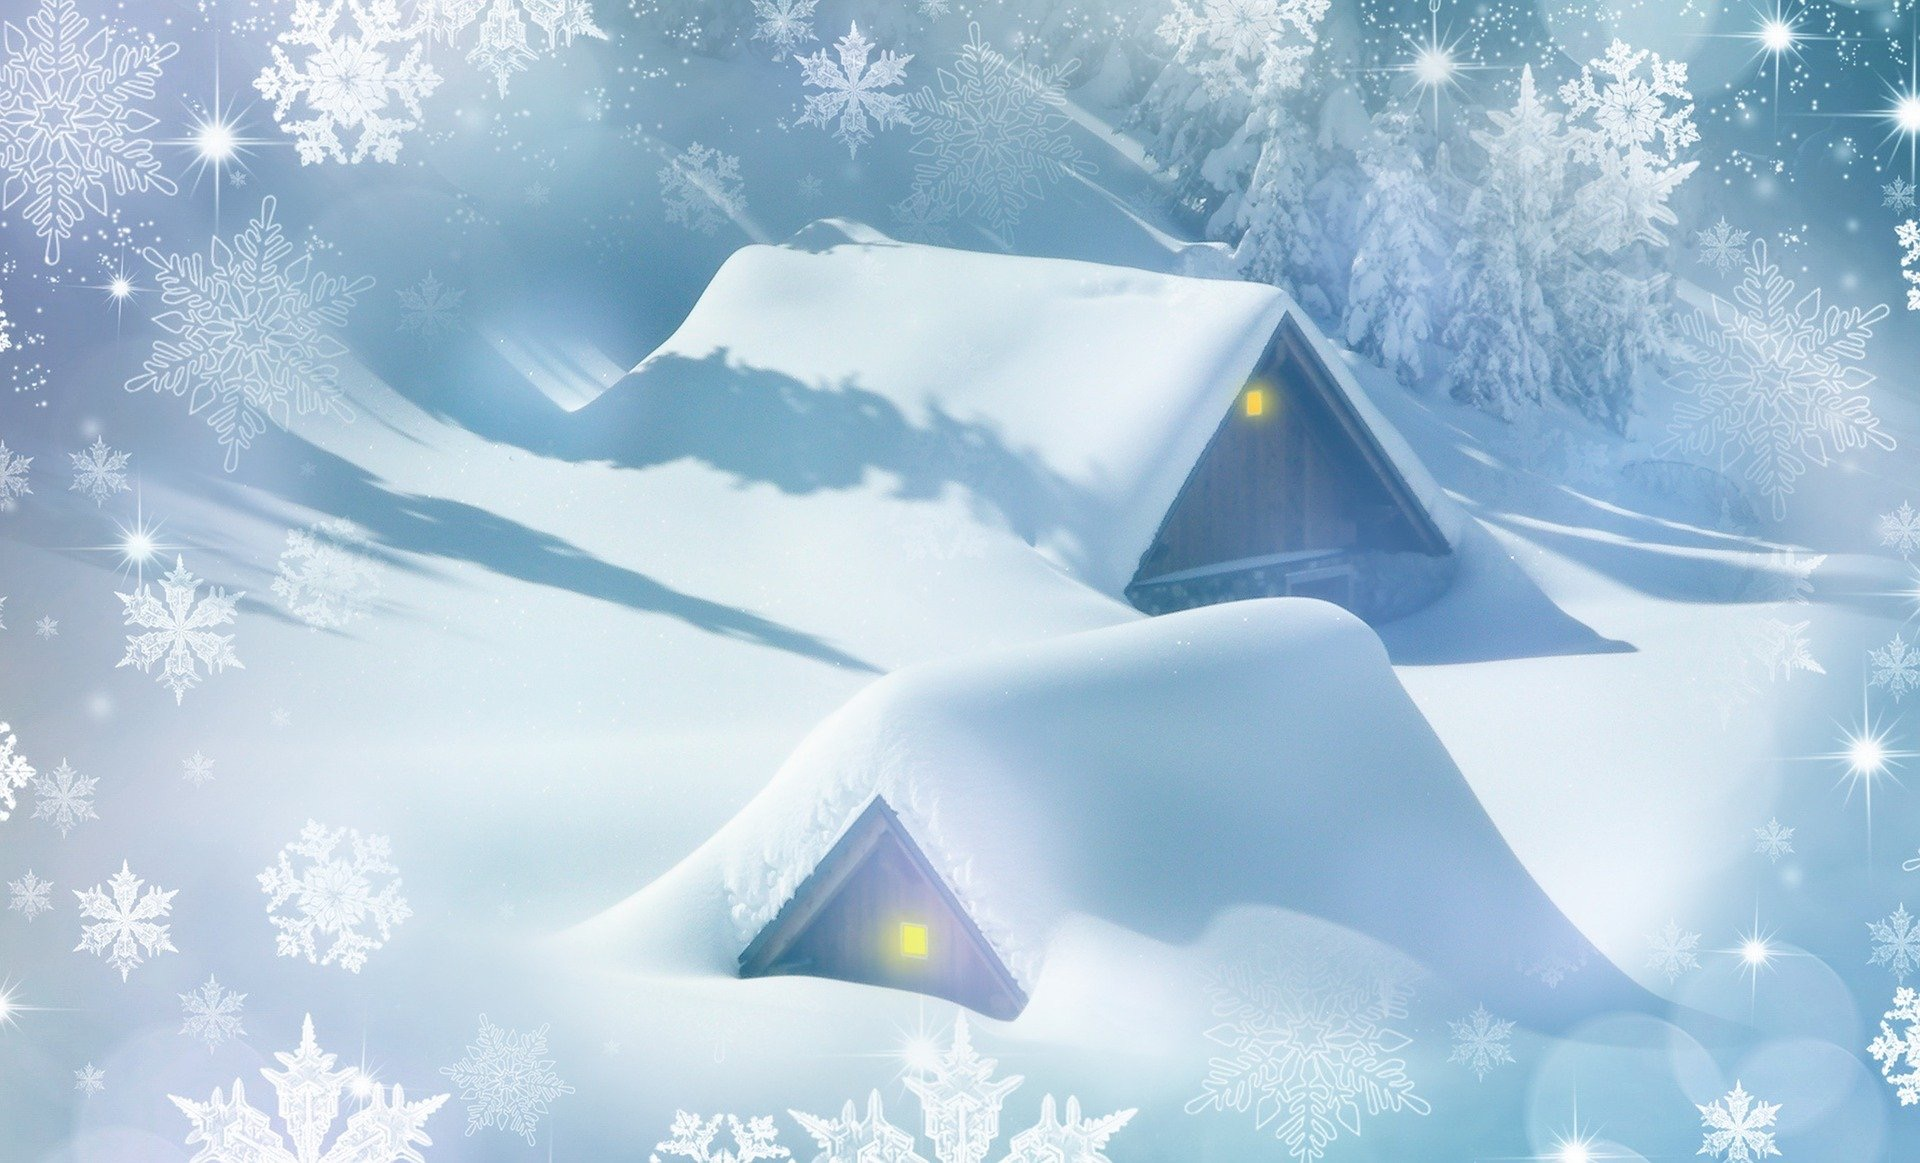 A drawing of houses buried in snow.